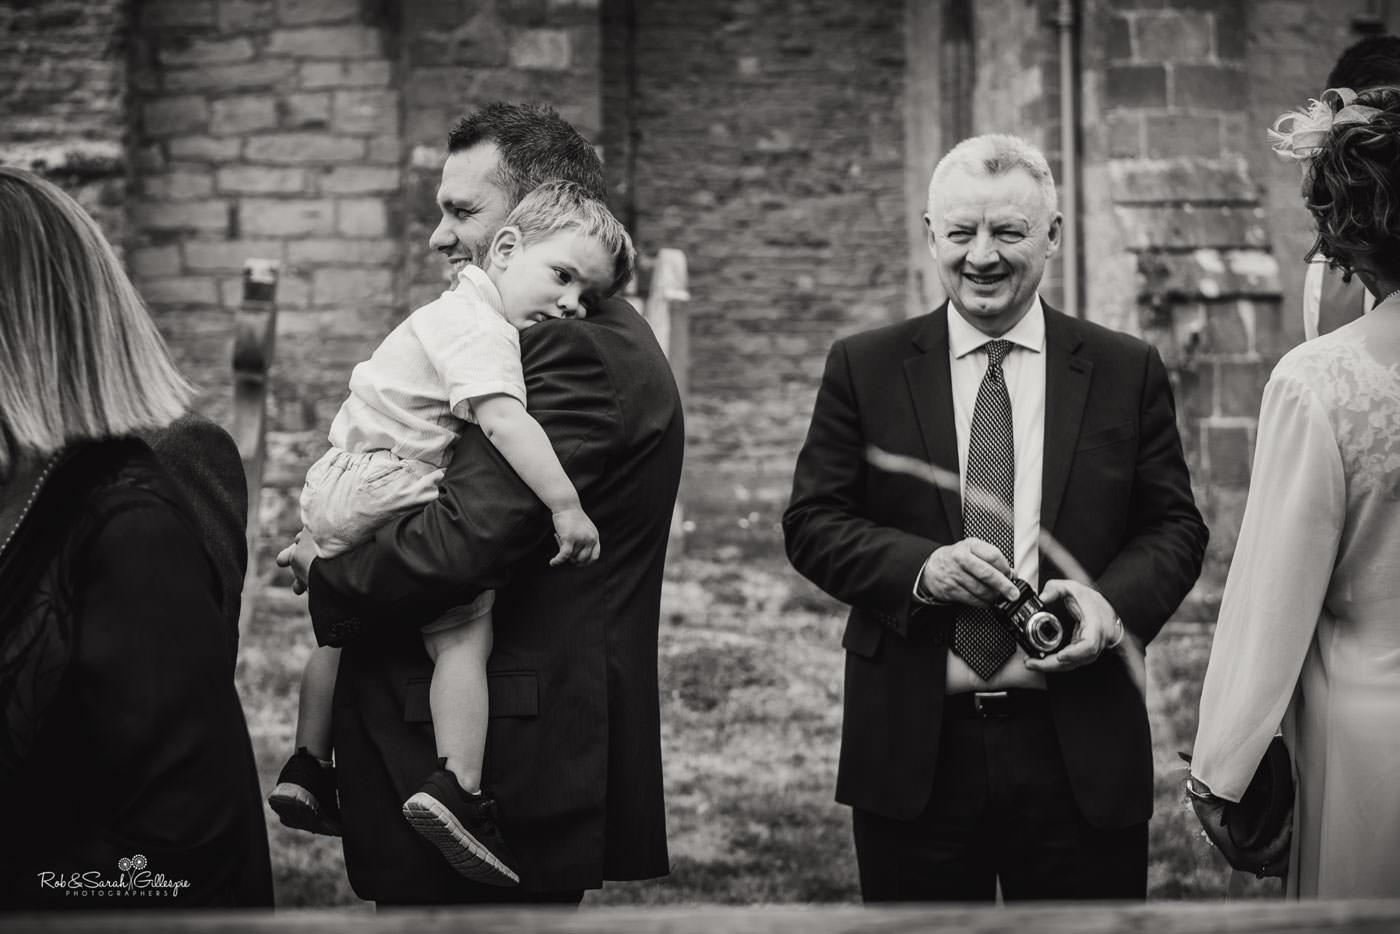 Wedding guests congratulate bride and groom at St Peter's Church Diddlebury in Shropshire